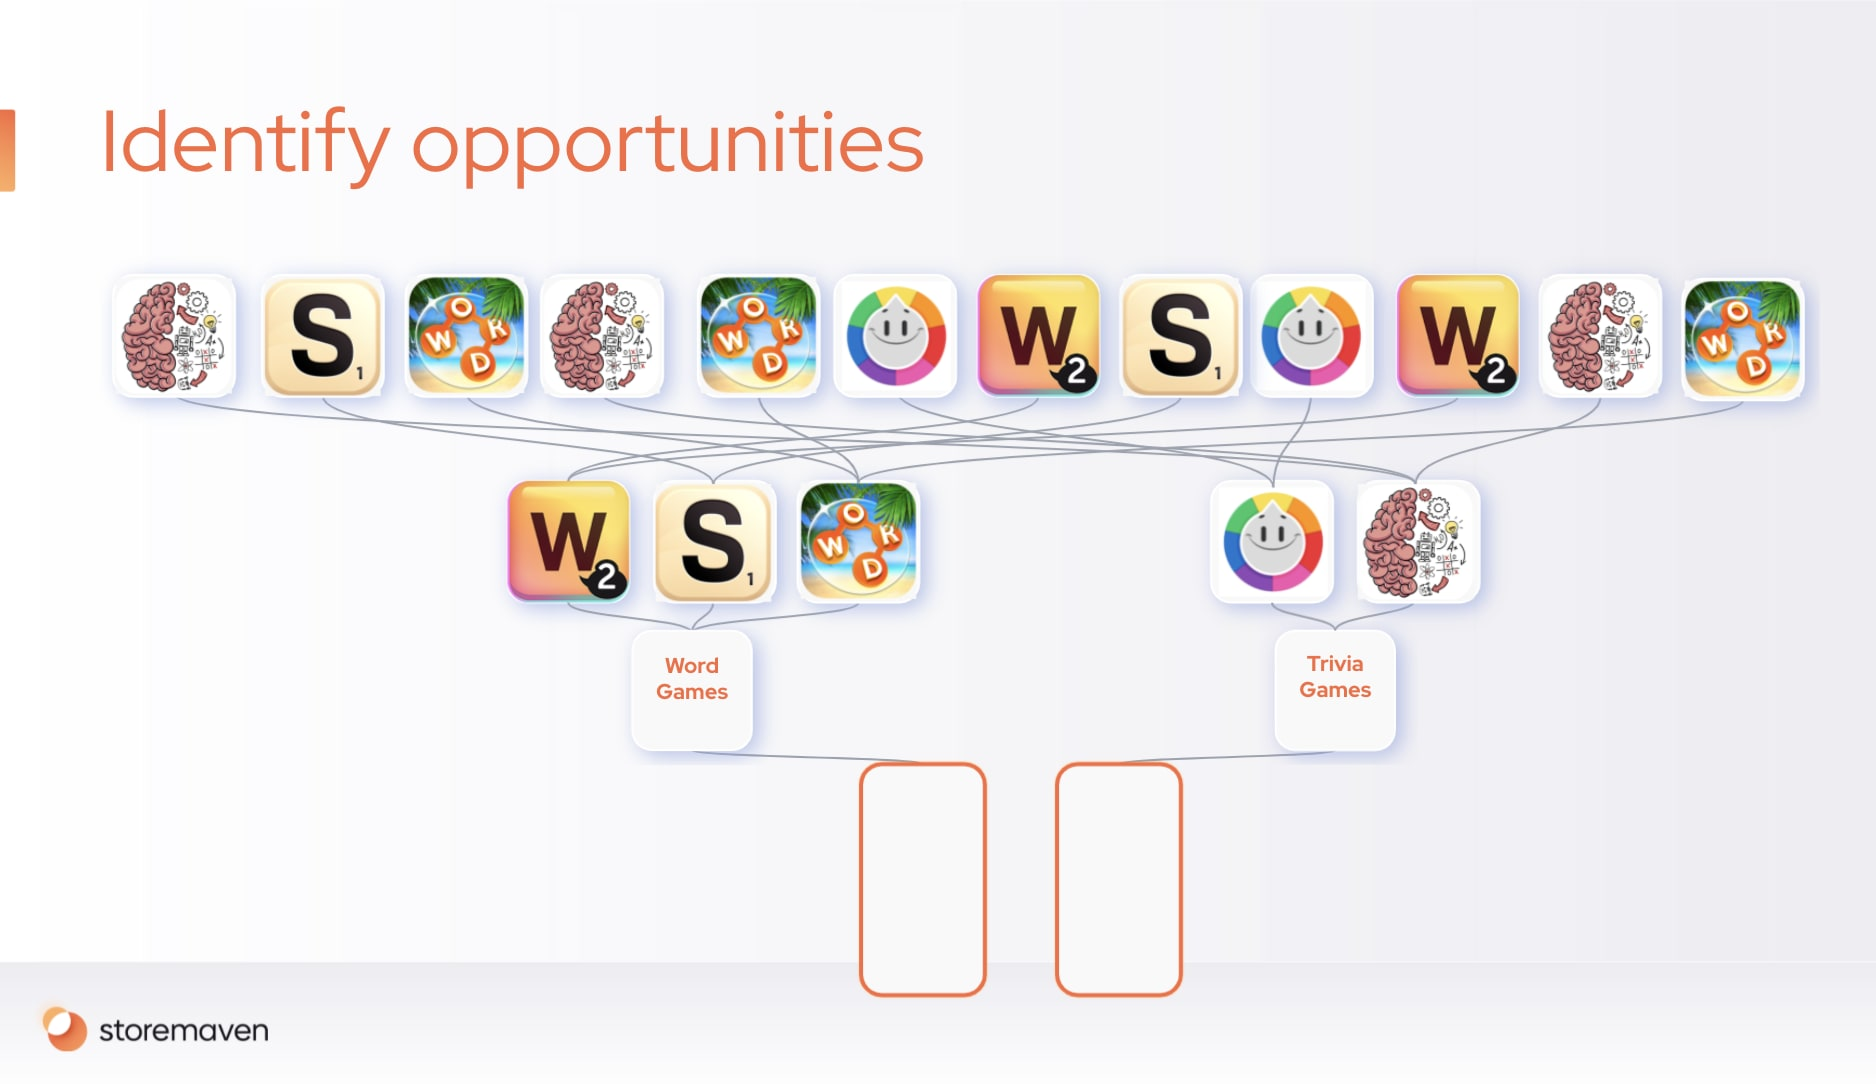 How to Prepare Your Acquisition Strategy for iOS 15 - 4